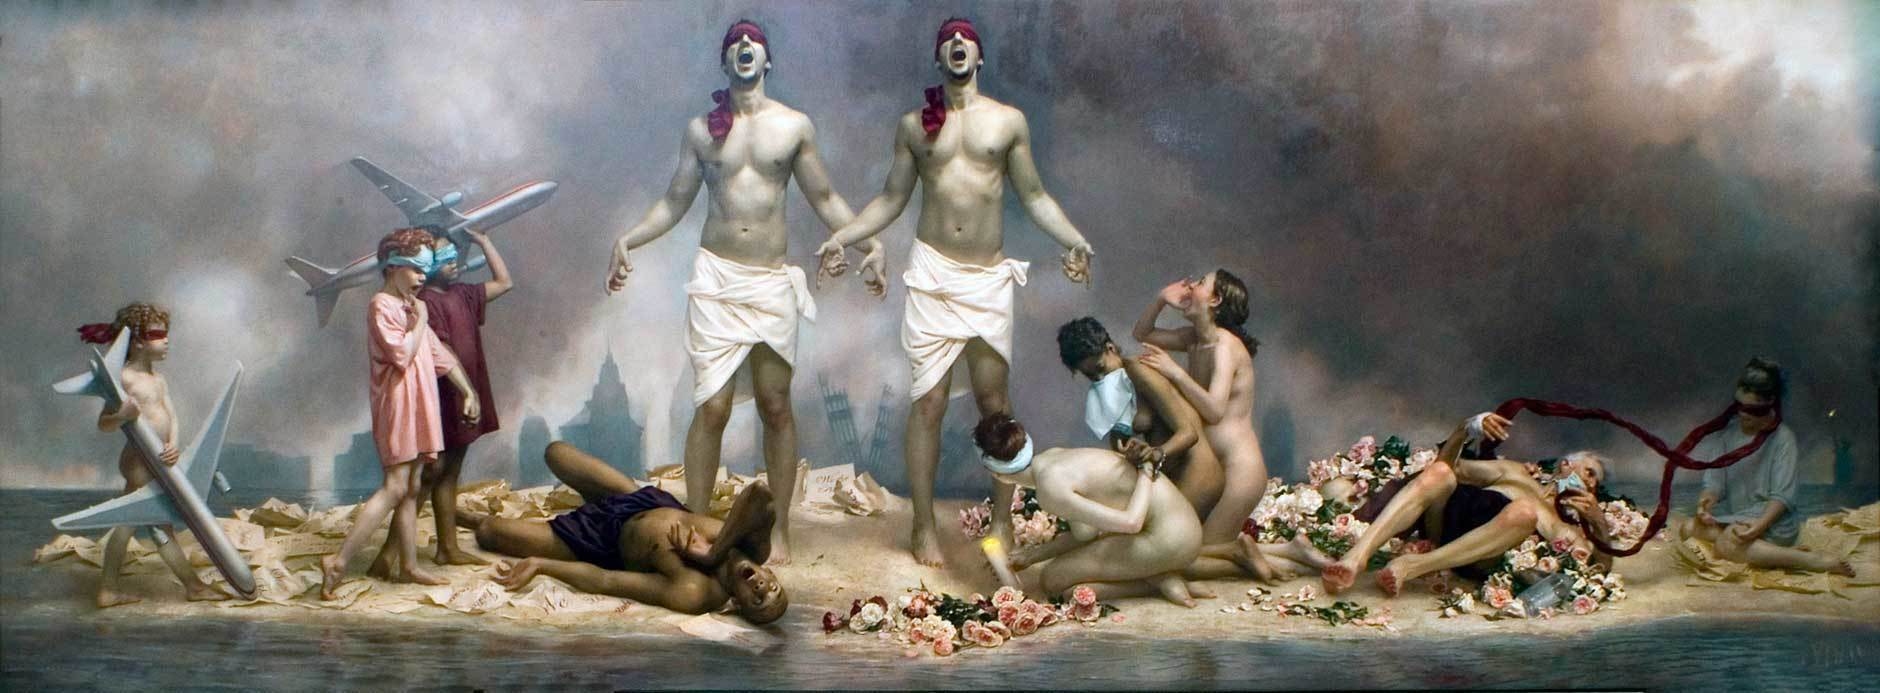 Graydon Parrish, <i>The Cycle of Terror and Tragedy</i>, Oil on Canvas, 76 x 210 in., Charles F. Smith Fund and in memory of Scott O'Brien who died in the World Trade Center, given by his family